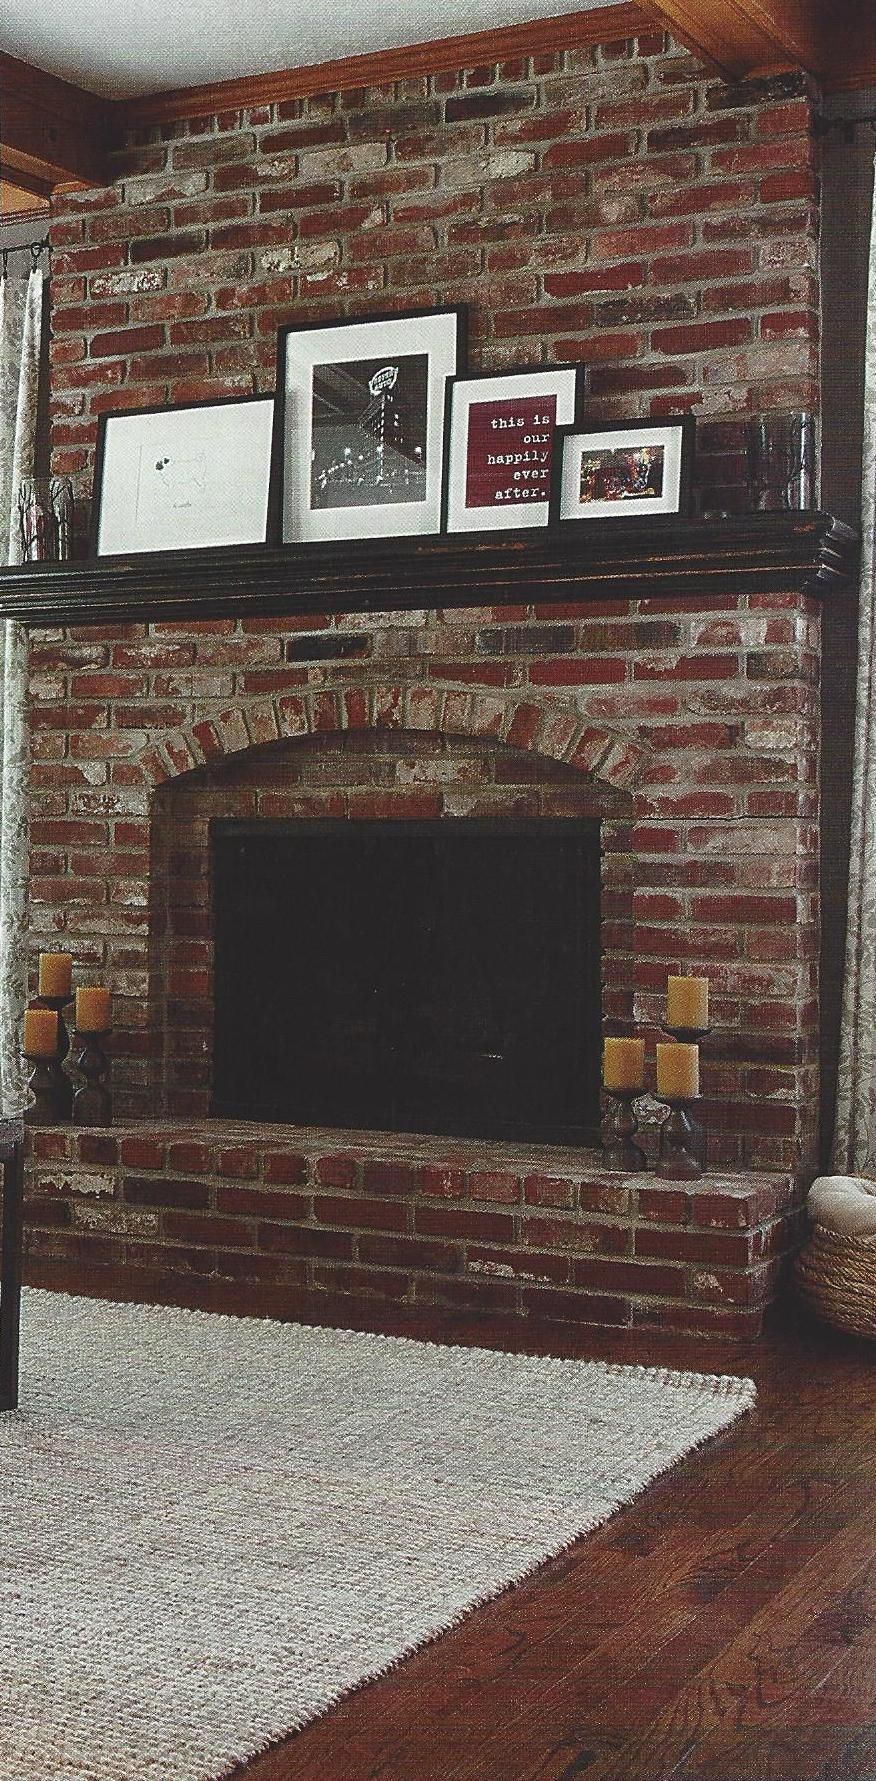 Brick Fireplace Wood Mantel Have A Red Brick Fireplace With Dark Wood Mantel This Is A Great